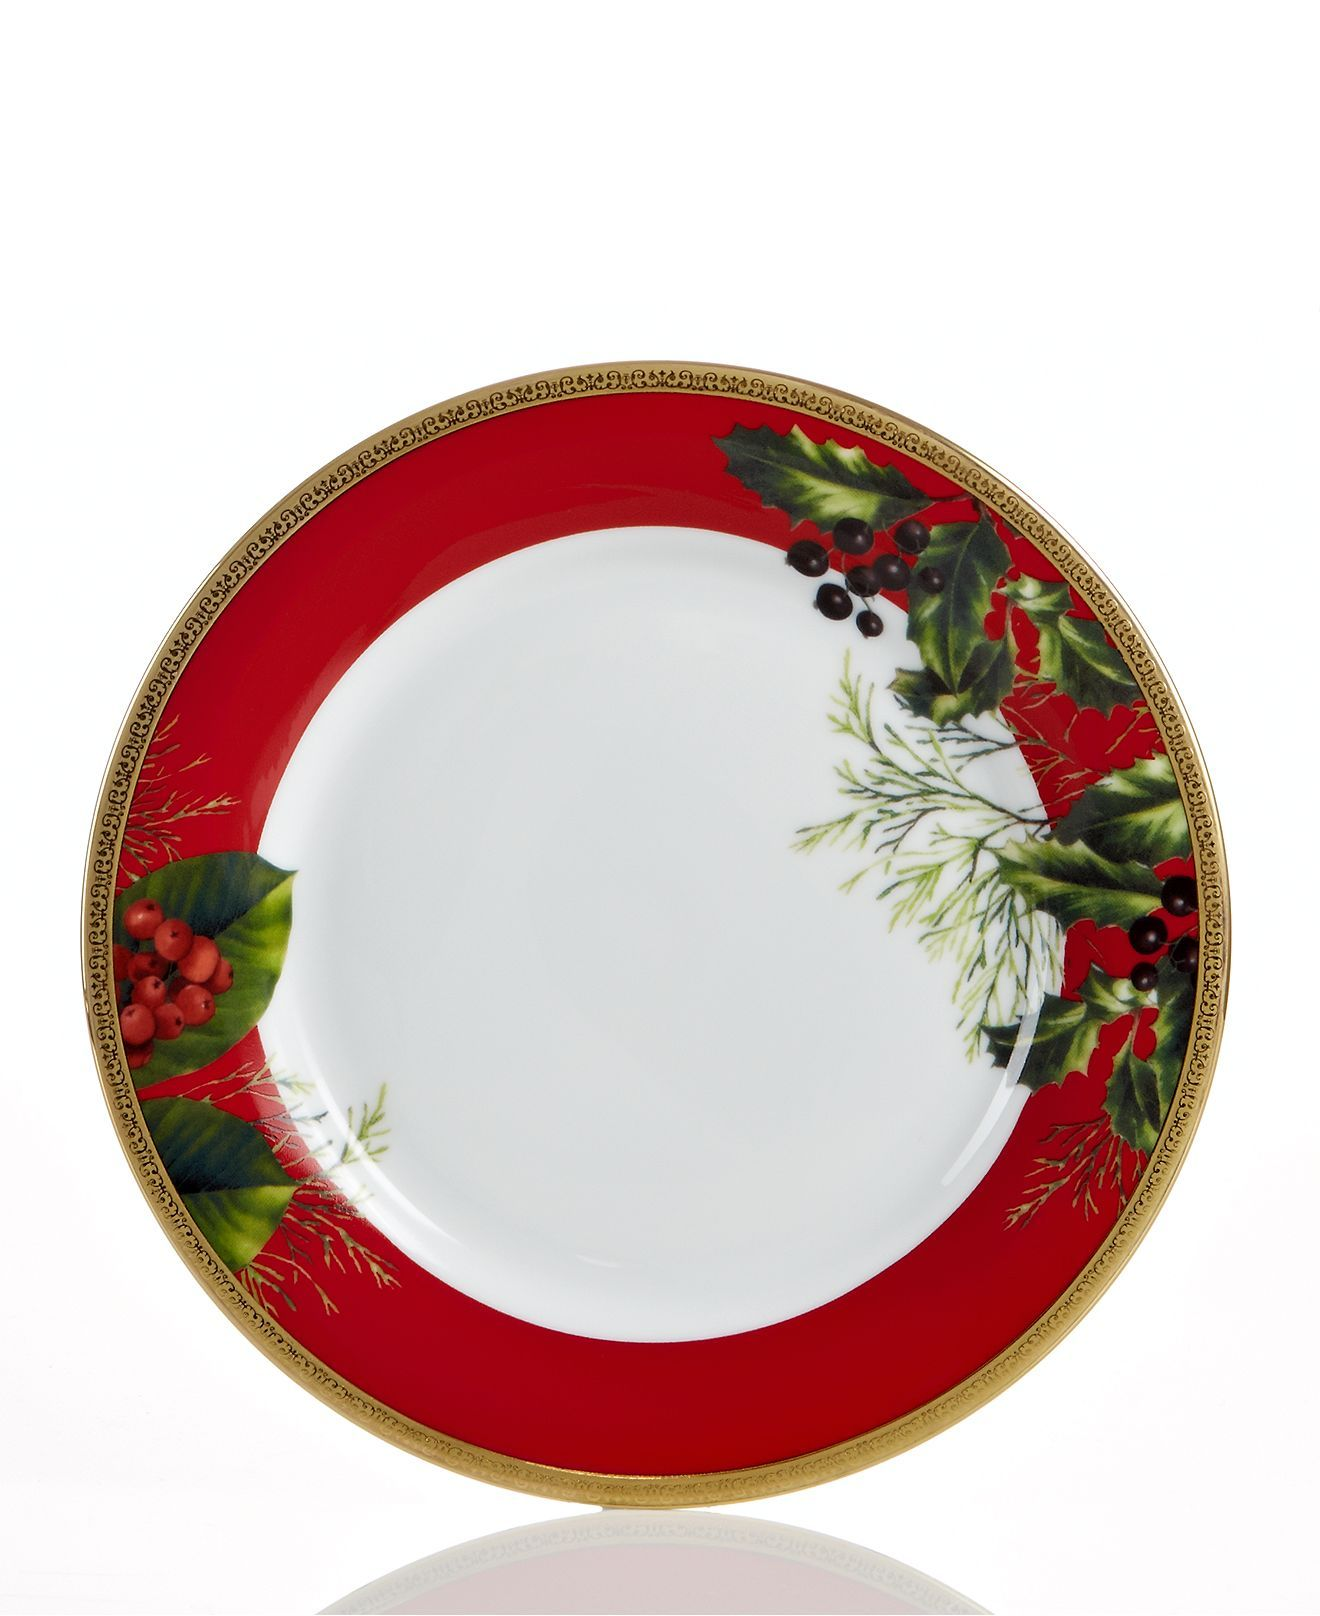 Charter Club Dinnerware Red Rim Accent Plate Fine China Dining Entertaining Macy S Christmas China Christmas Tableware Christmas Dinnerware